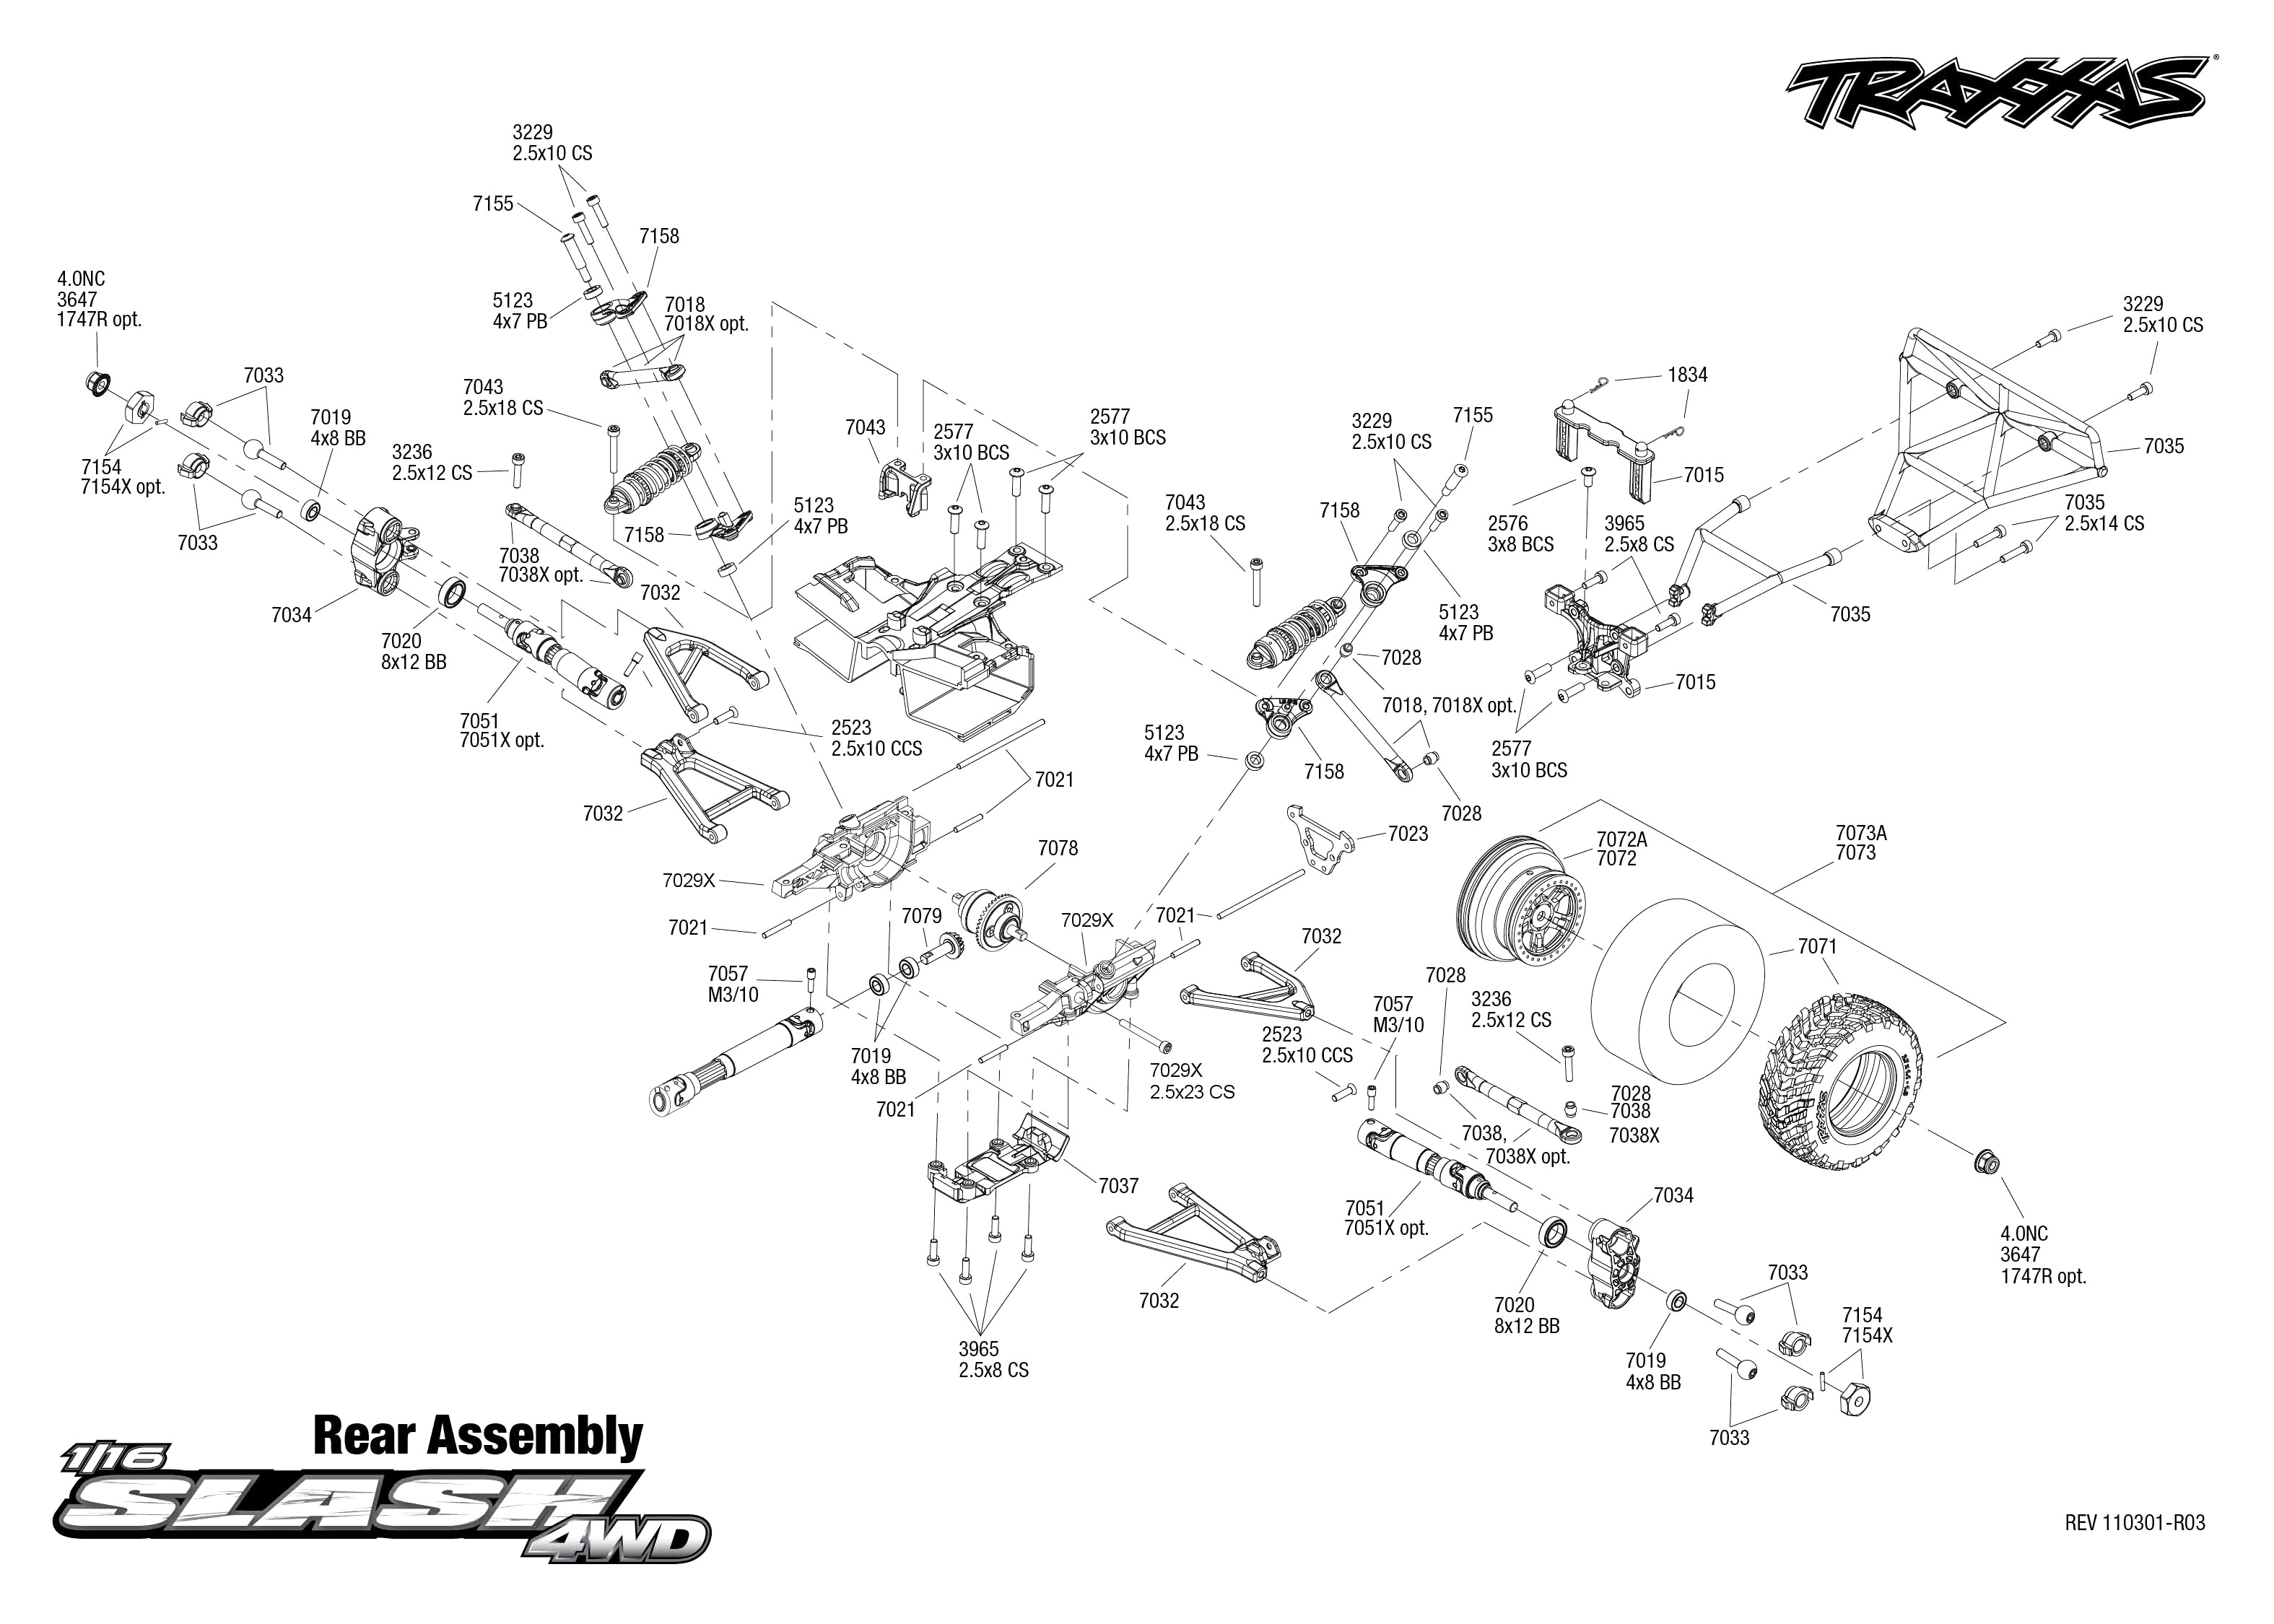 Traxxas Slash 2wd Assembly Manual Wiring Diagram Master Blogs 4510 Nitro Sport Explodedviews Chassis 0 Pdf Database Rh 18 2 Infection Nl De Instruction